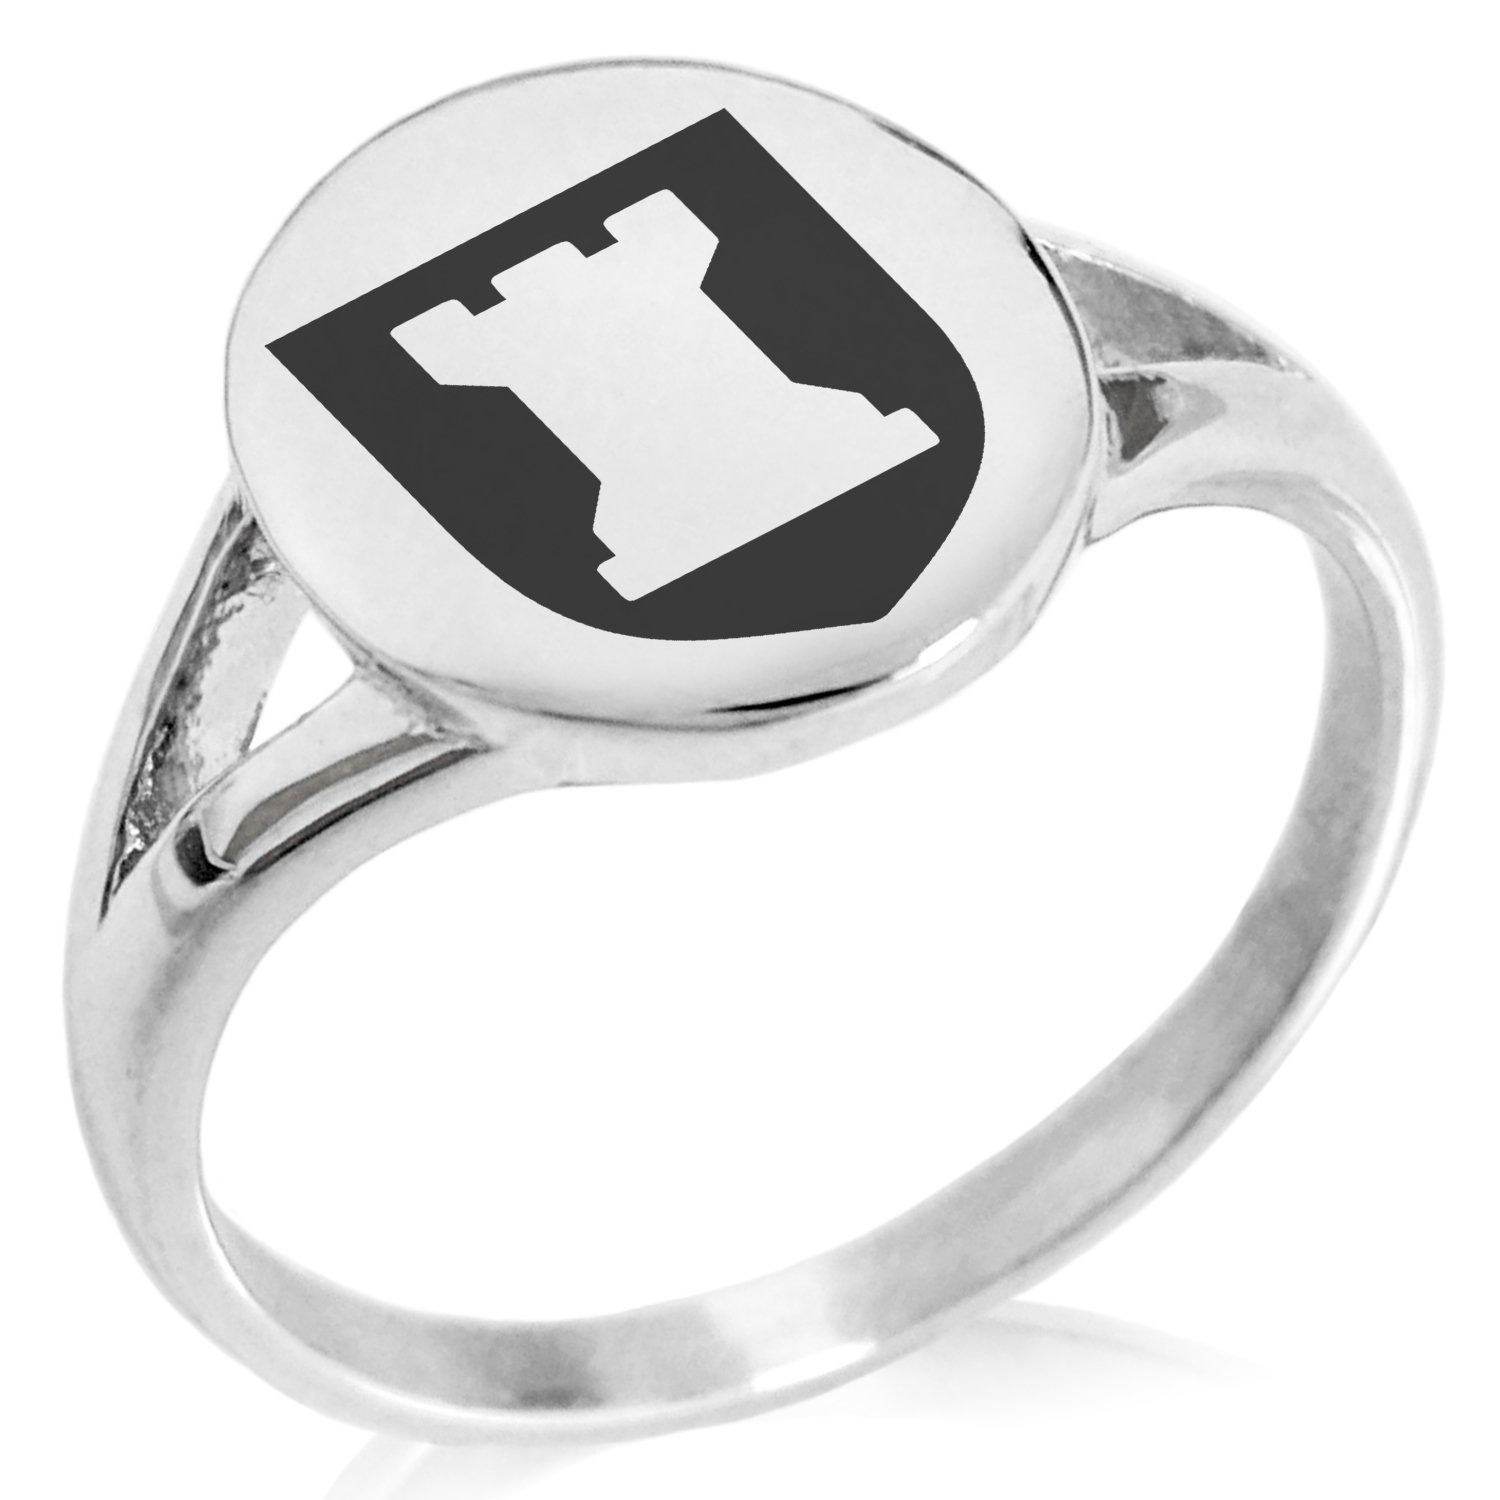 Tioneer Stainless Steel Rook Strategy Coat of Arms Shield Symbol Minimalist Oval Top Polished Statement Ring, Size 5 by Tioneer (Image #1)